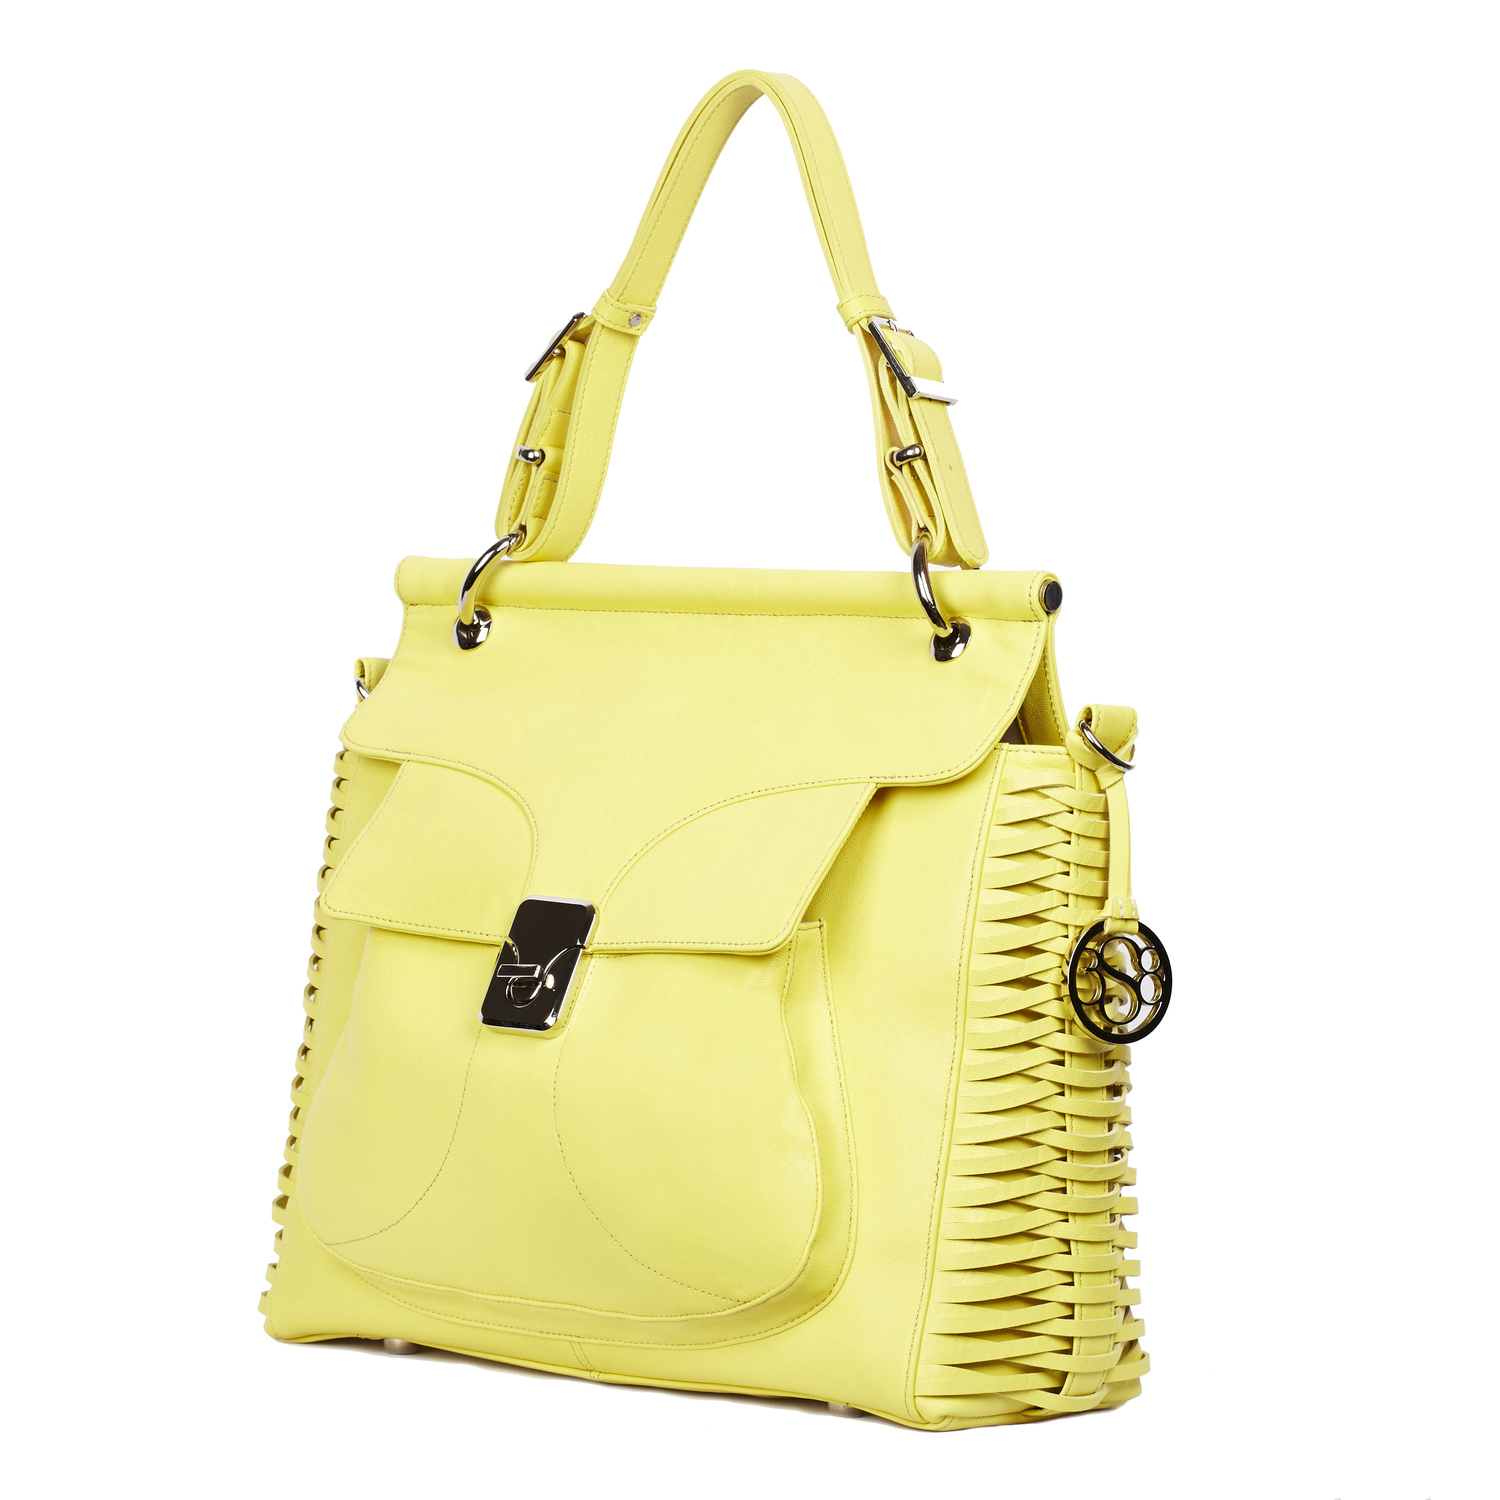 ELECTRIC DAFFODIL - $795.00